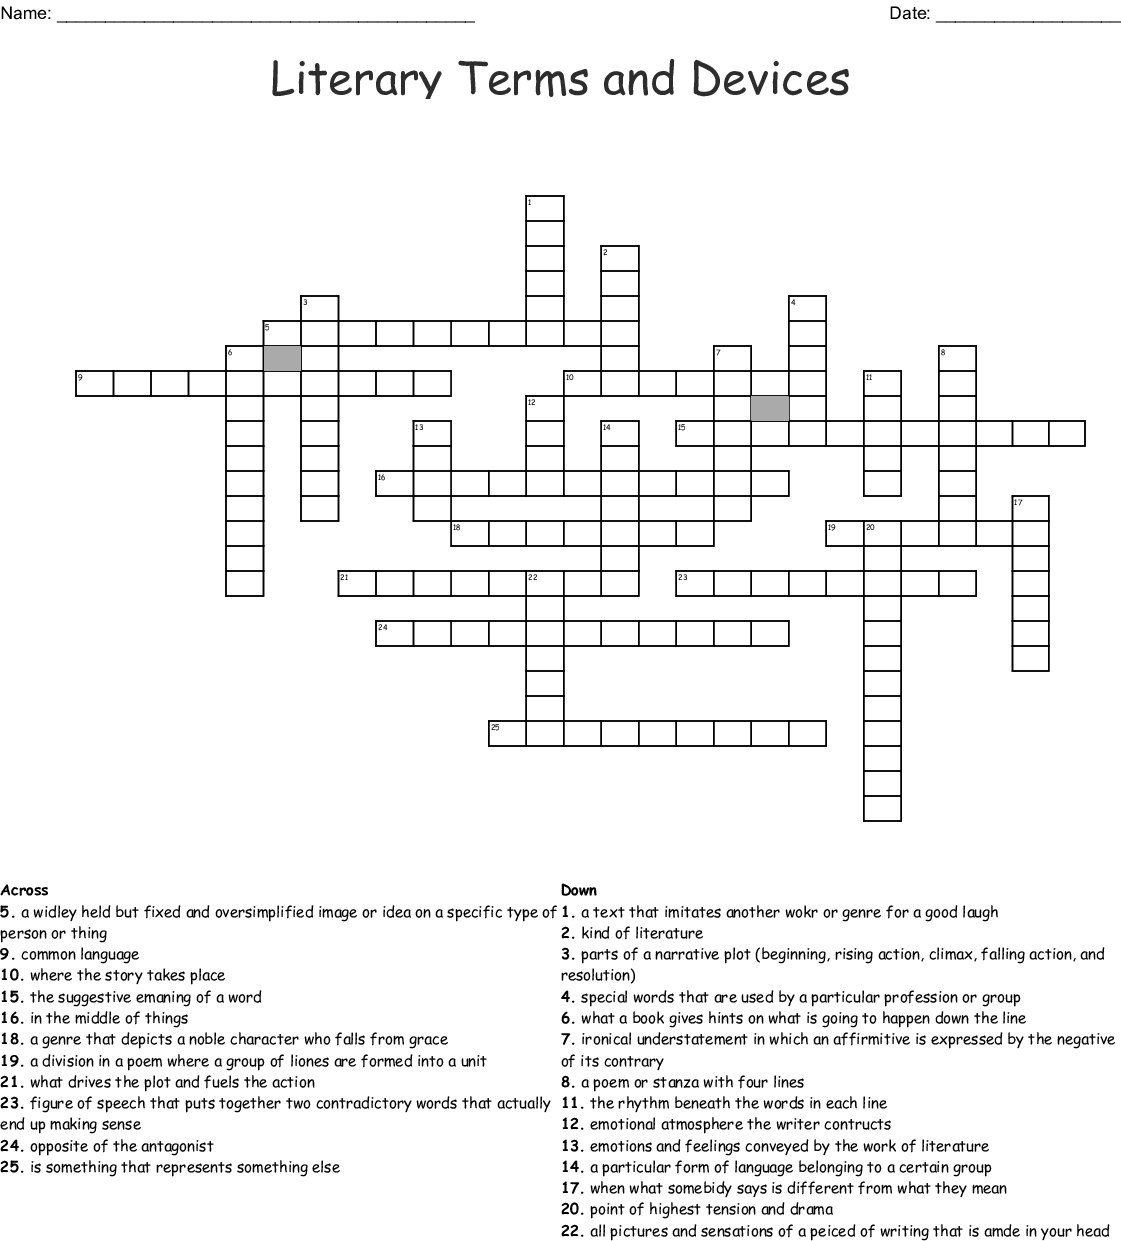 Literary Terms and Devices Crossword - WordMint